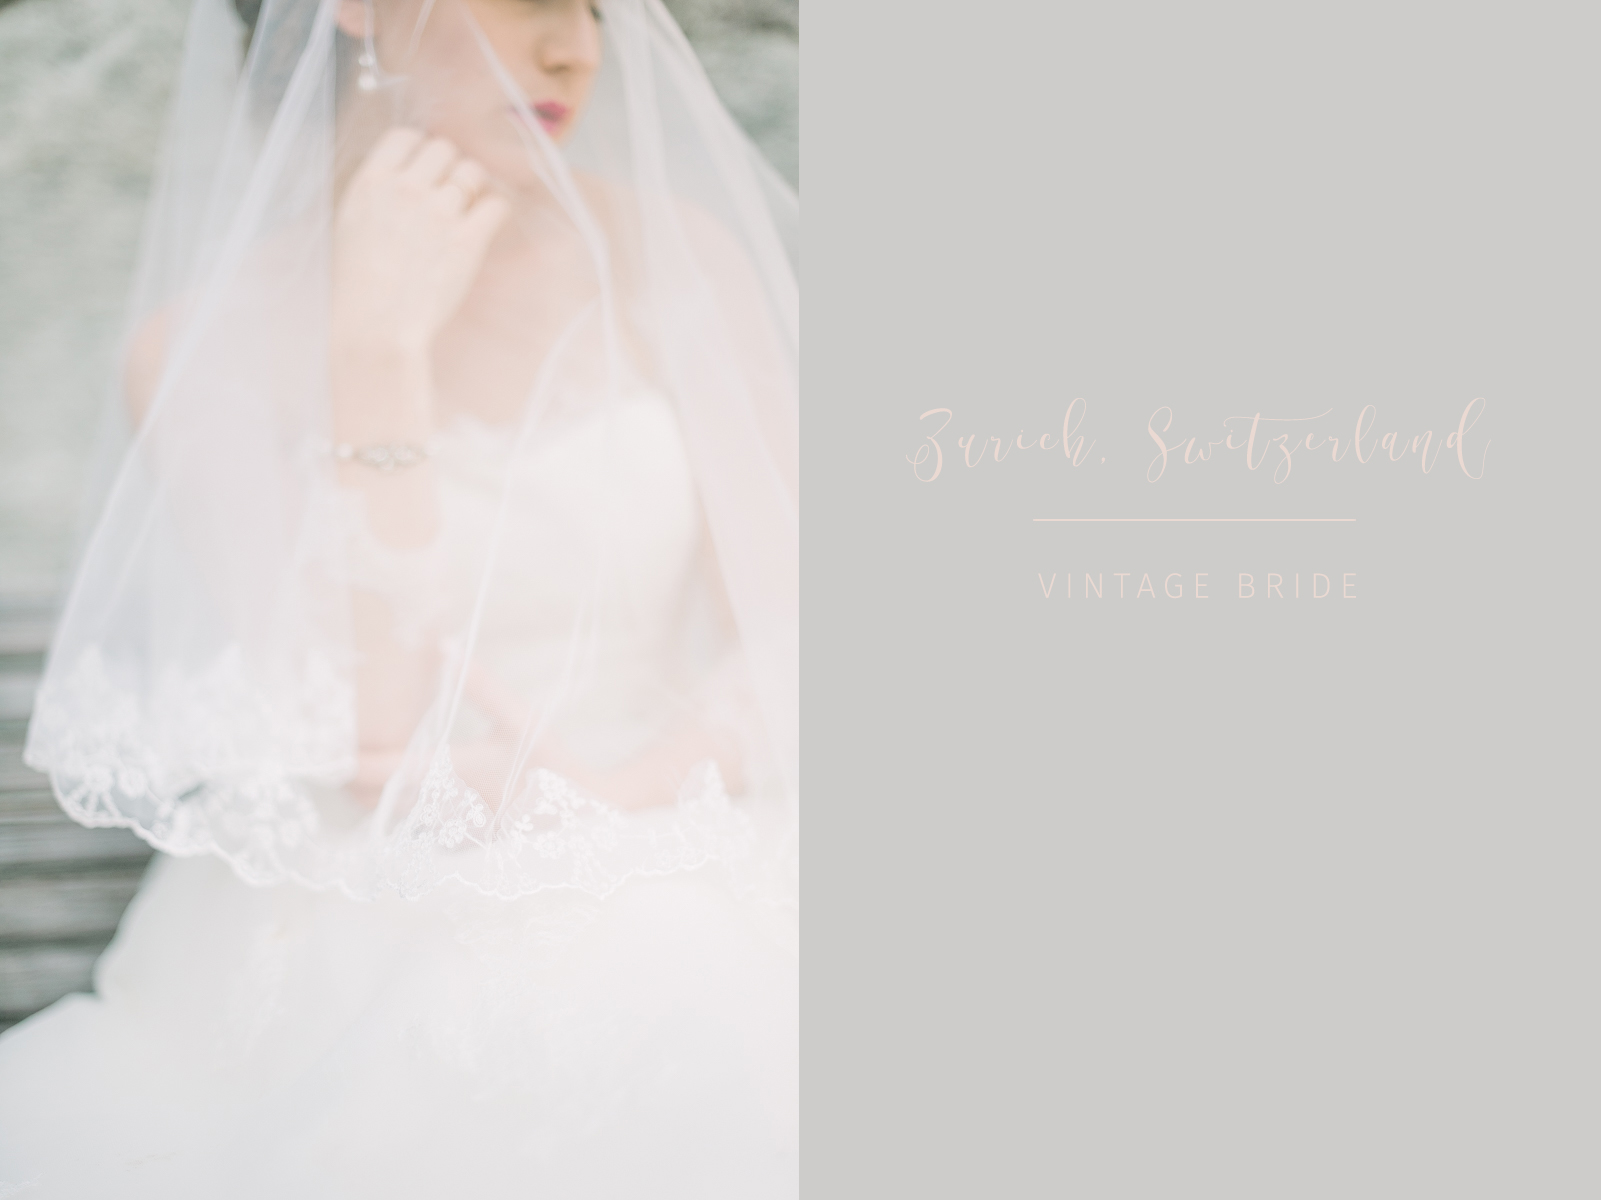 Boheme Moon Fine Art Wedding Photography - Bridal Portraits in Zurich, Schweiz